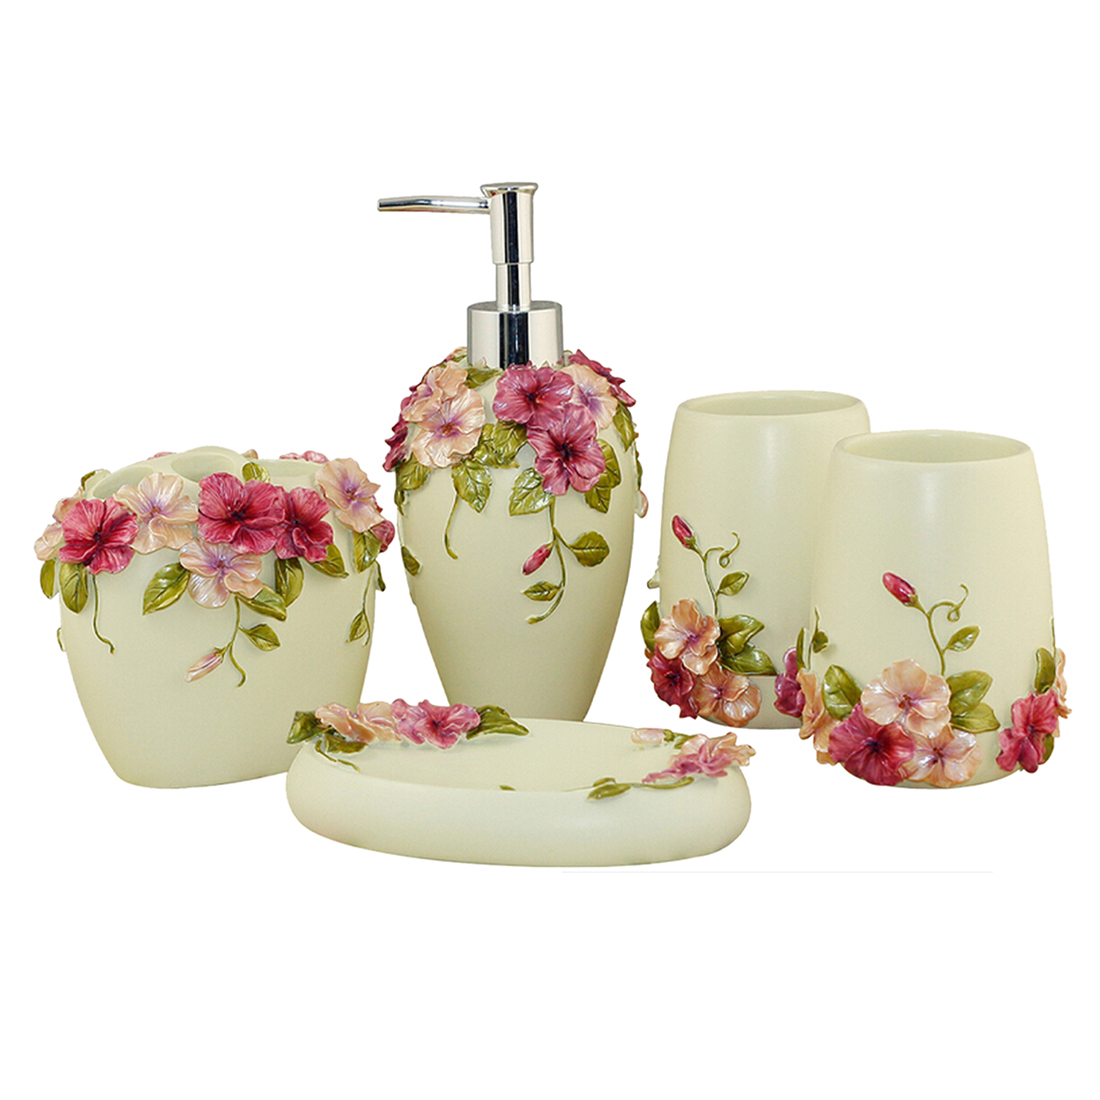 SZS Hot Country Style Resin 5Pcs Bathroom Accessories Set Soap ...